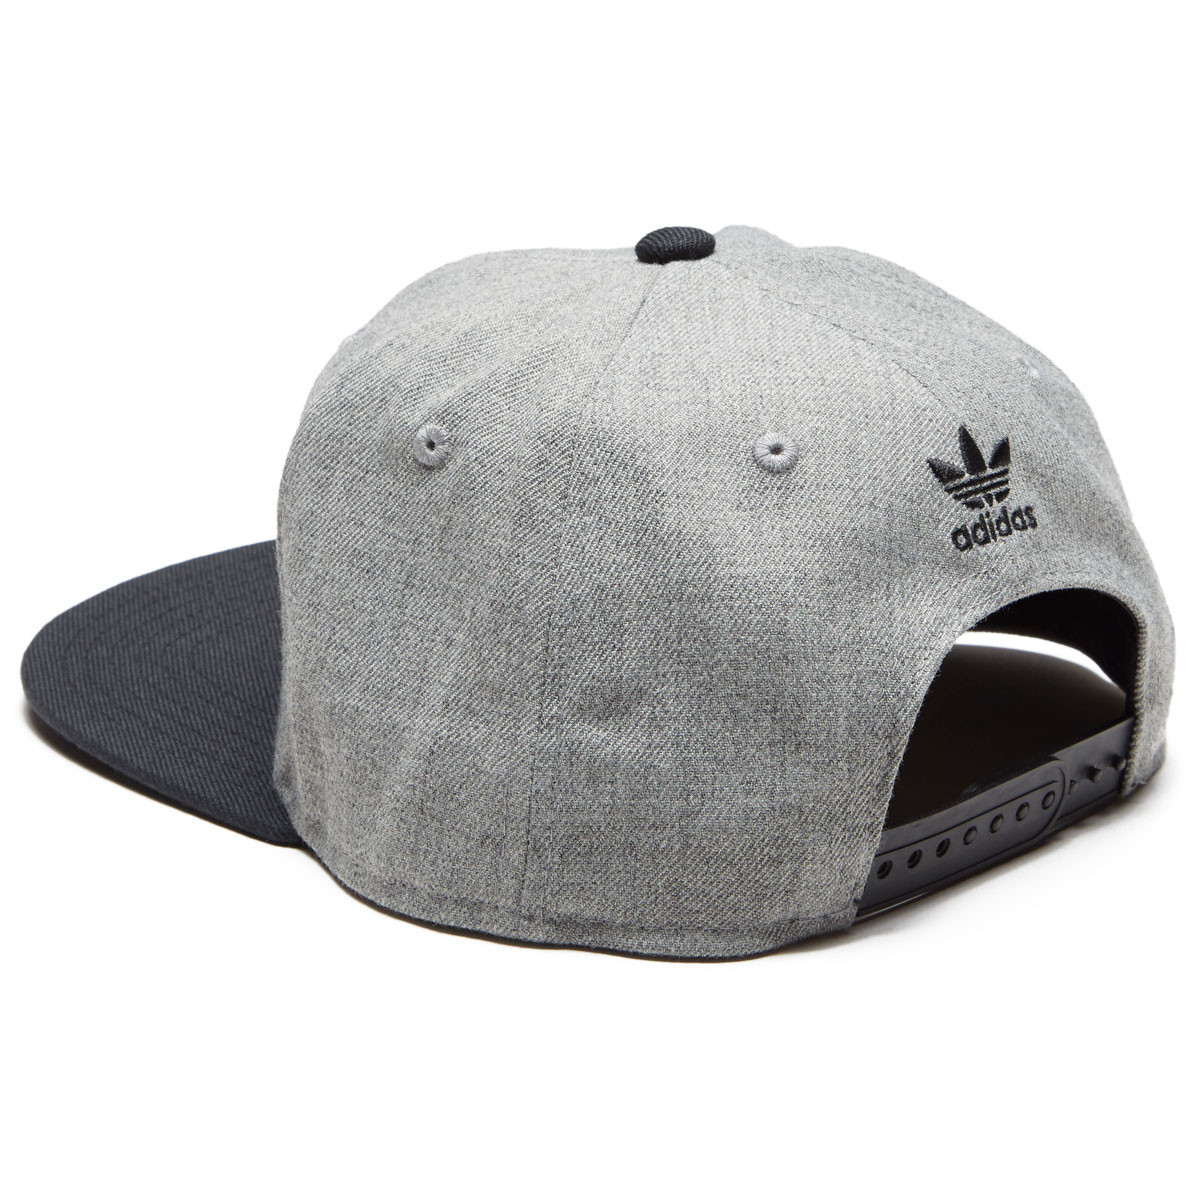 a84197b3993 Adidas Men s Originals Trefoil Chain Snapback Hat - Heather Grey Black